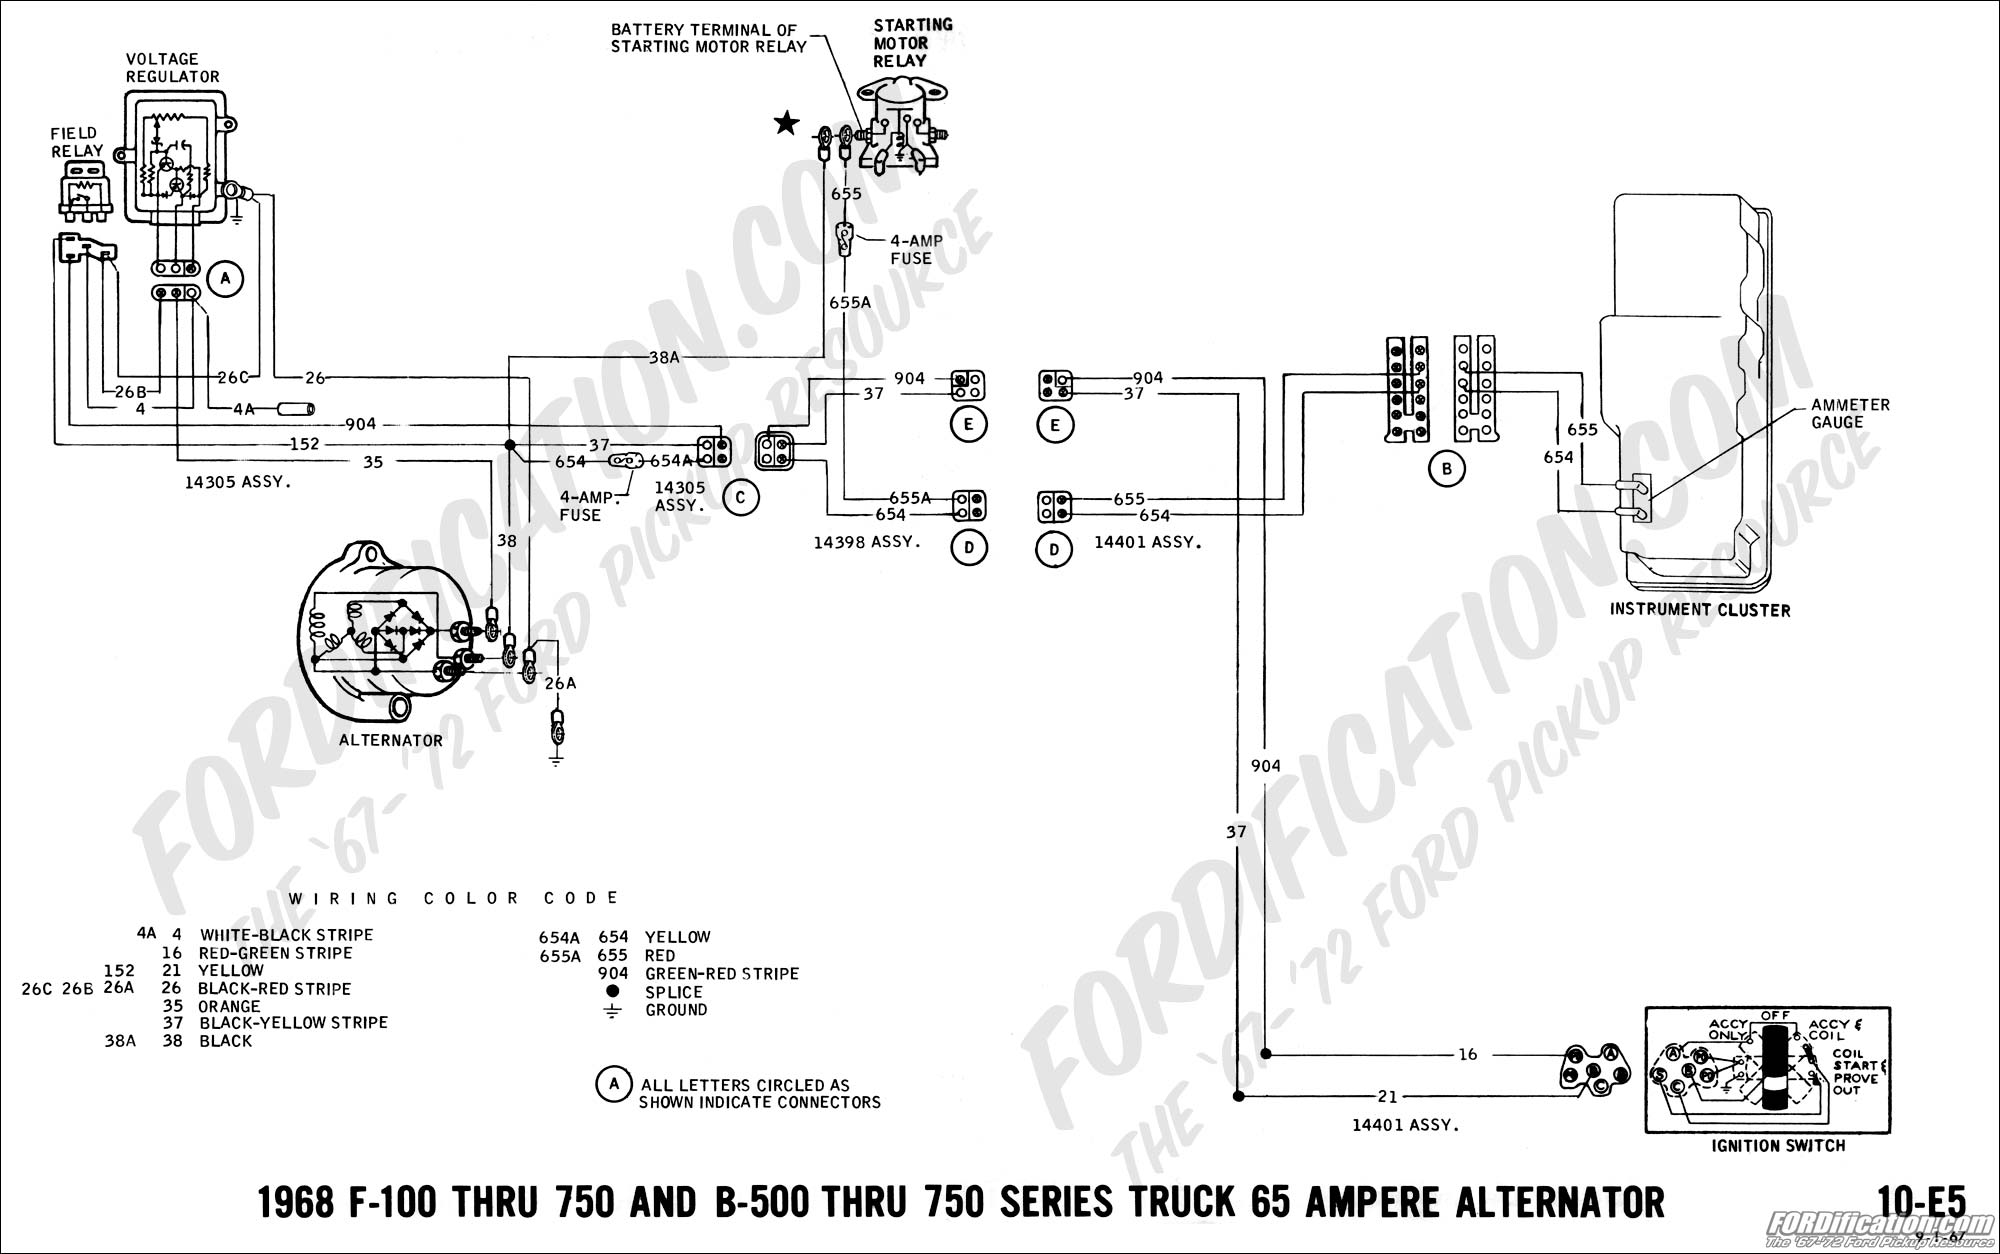 68 07 ford truck technical drawings and schematics section h wiring Ford F 150 Transfer Case Diagram at bayanpartner.co